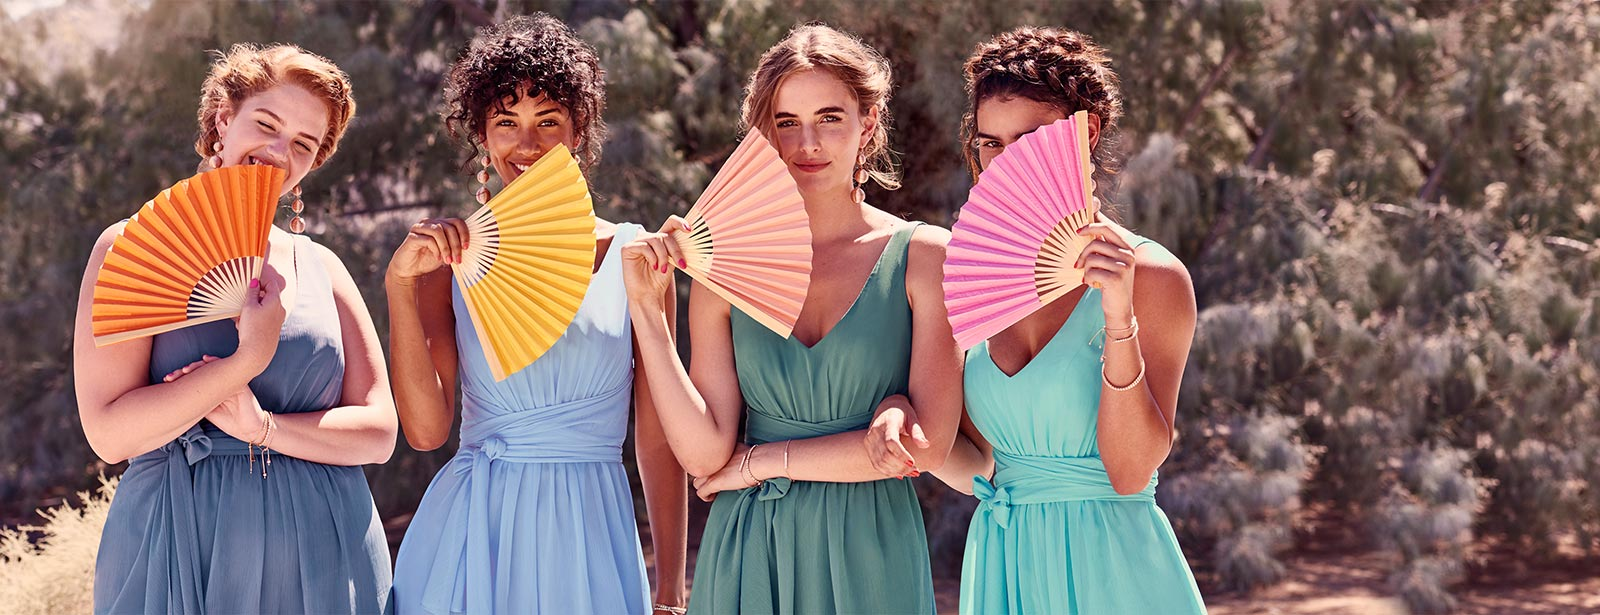 Spring wedding colors ideas inspiration davids bridal four bridesmaids holding colorful fans four bridesmaids holding colorful fans spring wedding junglespirit